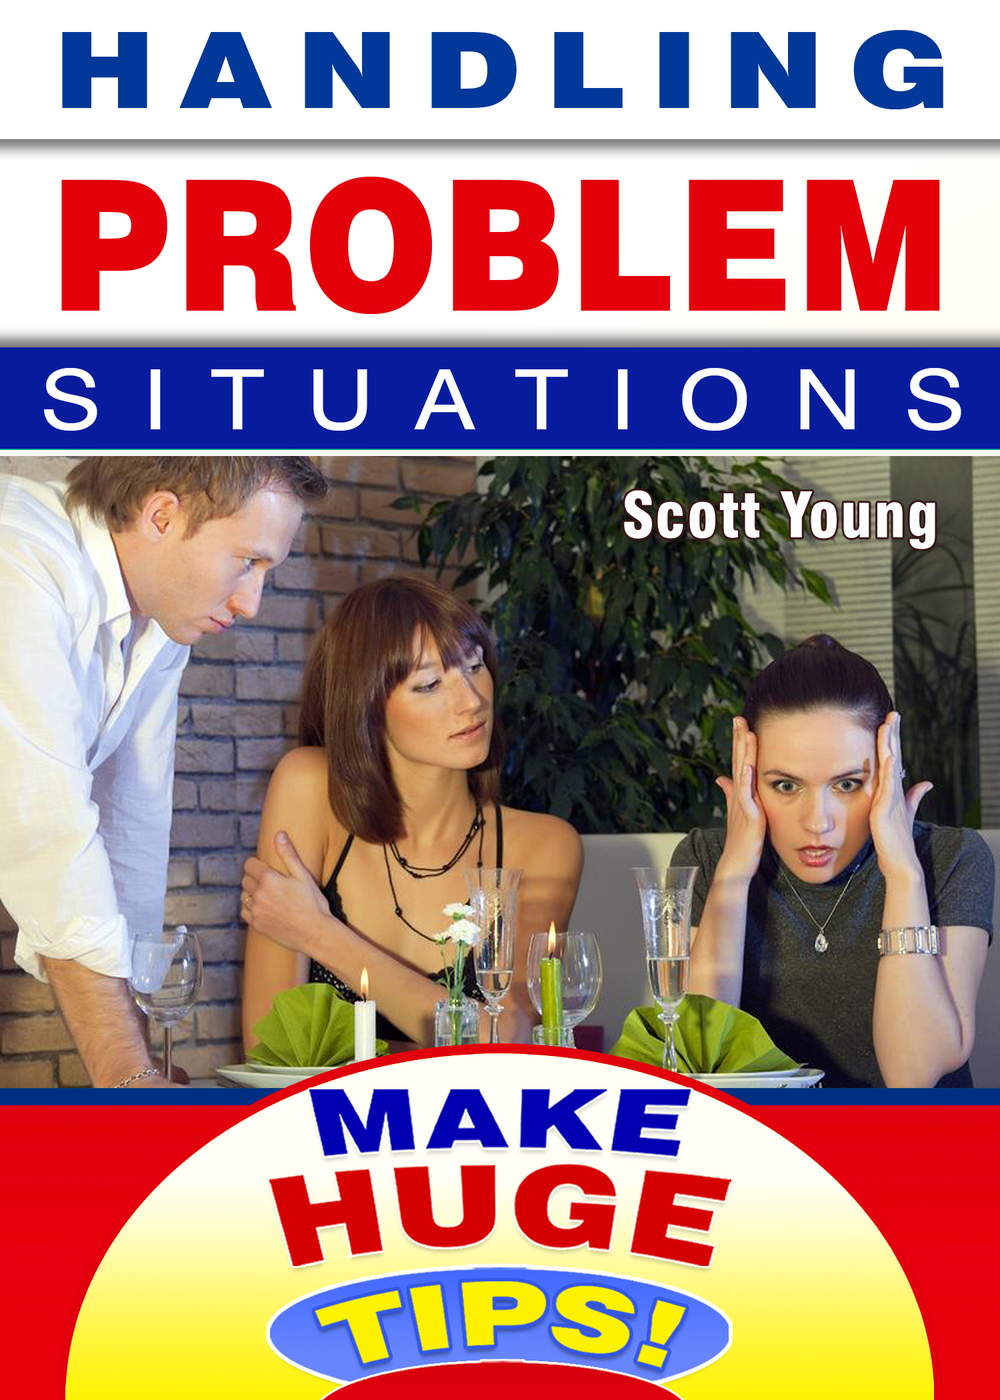 nbart_REVISED Handling Problem Situations_ Cover.jpg